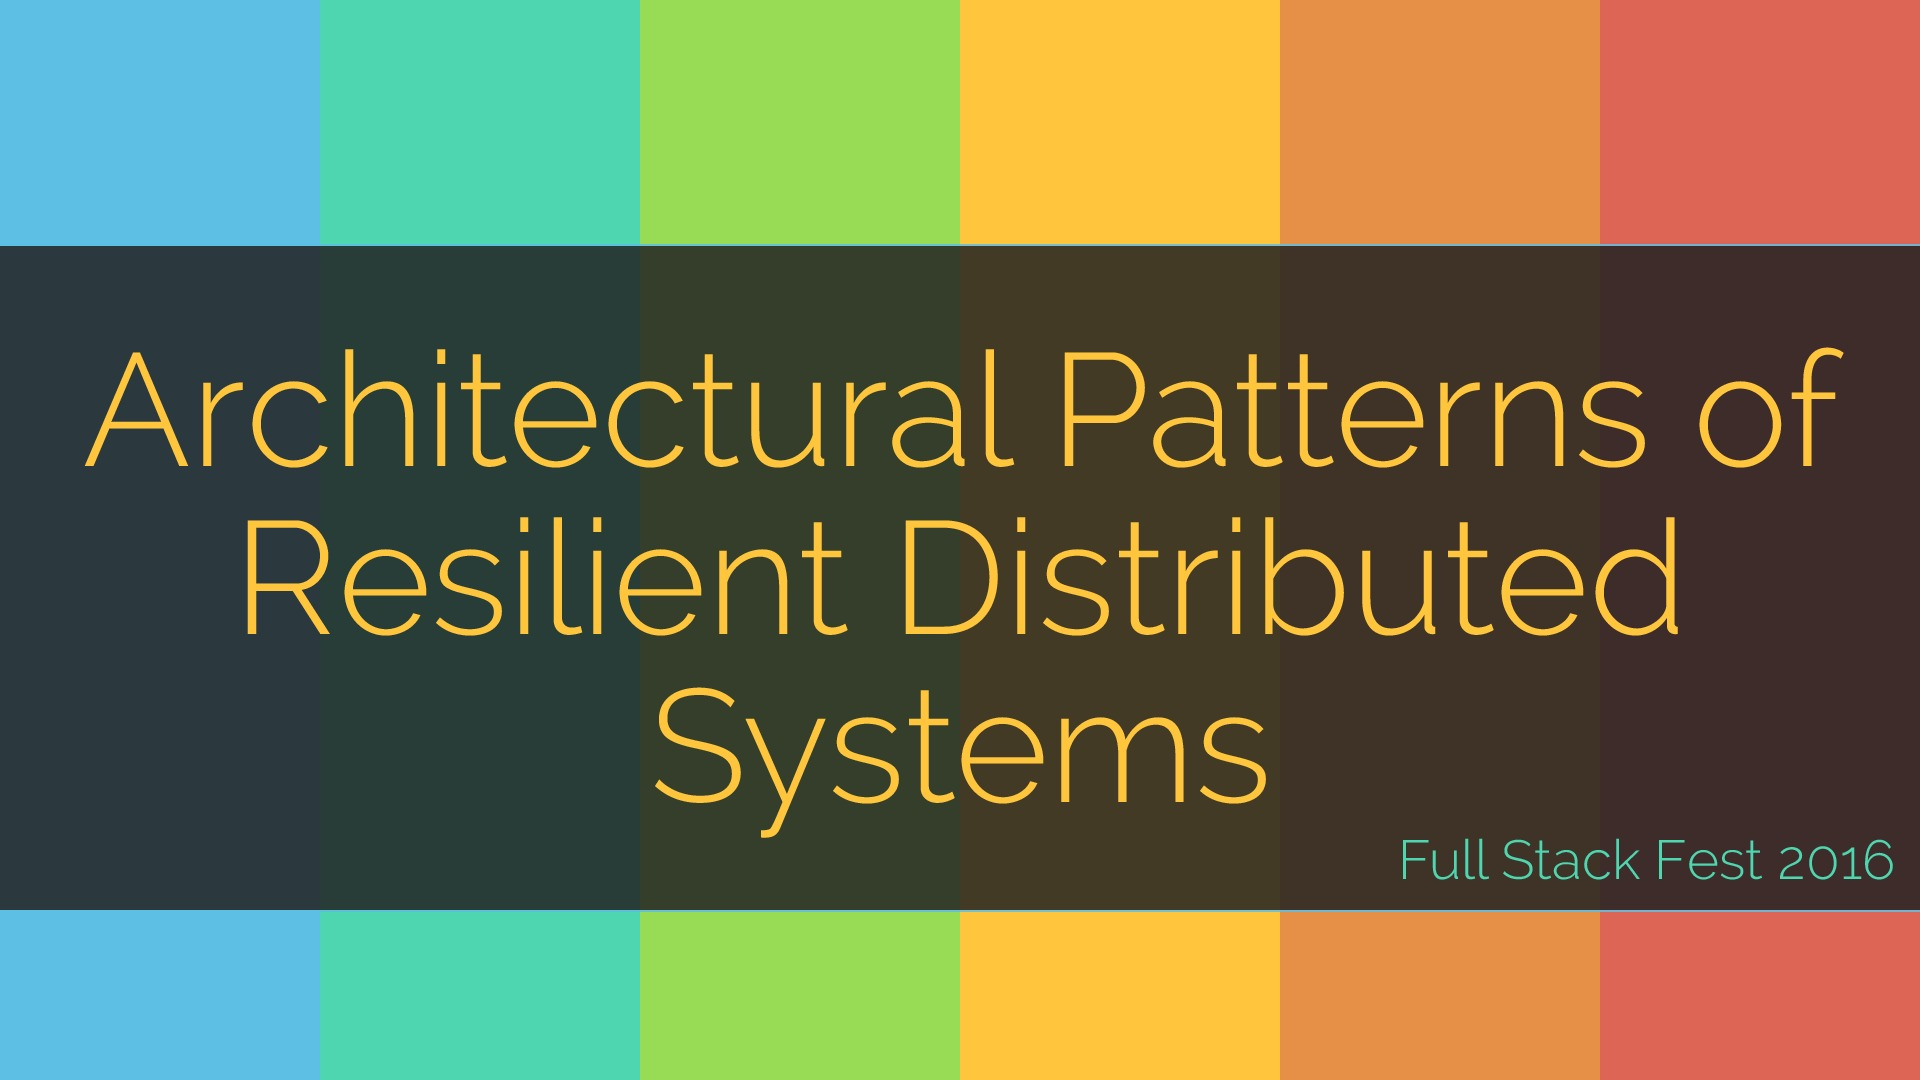 Full Stack Fest: Architectural Patterns of Resilient Distributed Systems